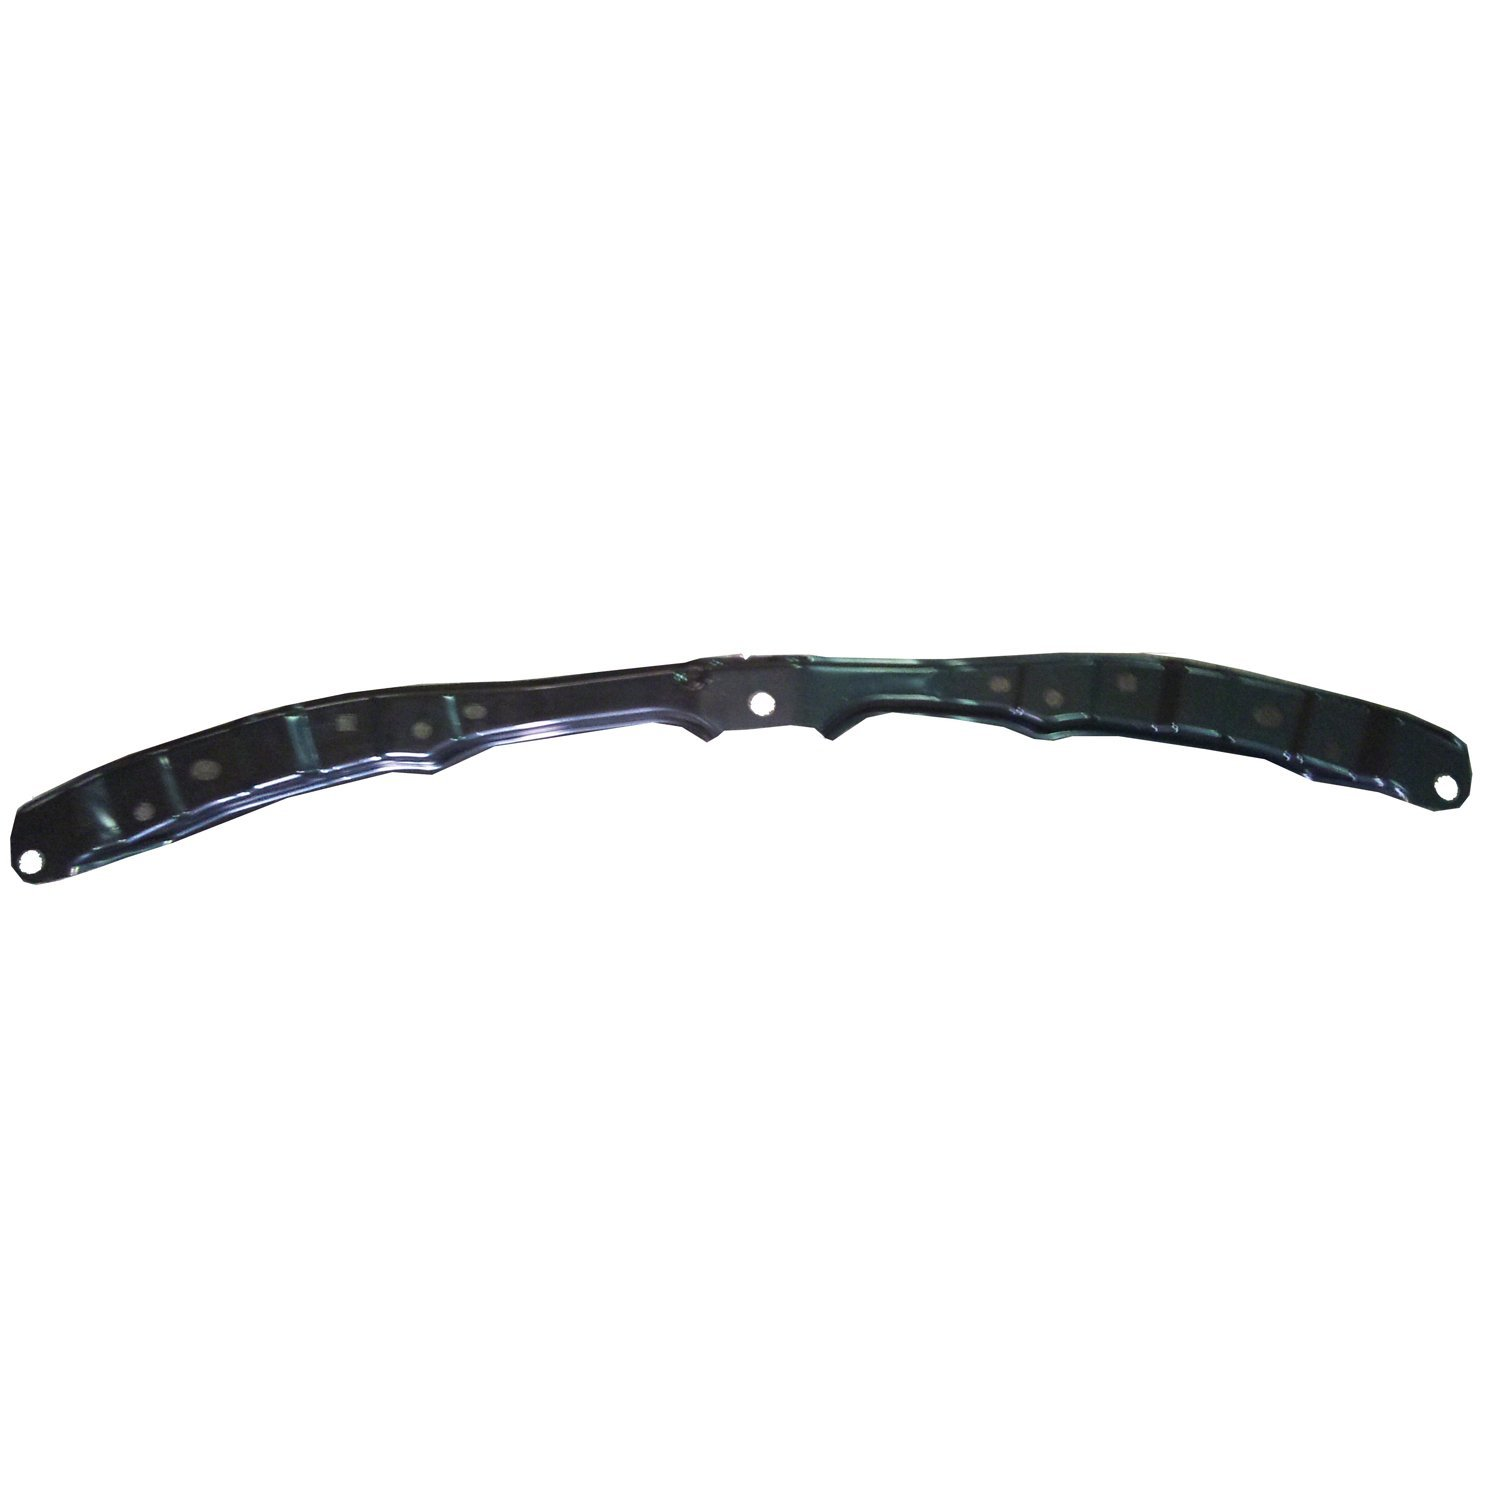 Crash Parts Plus Crash Parts Plus Front Bumper Reinforcement Upper for 2012-2013 Toyota Prius